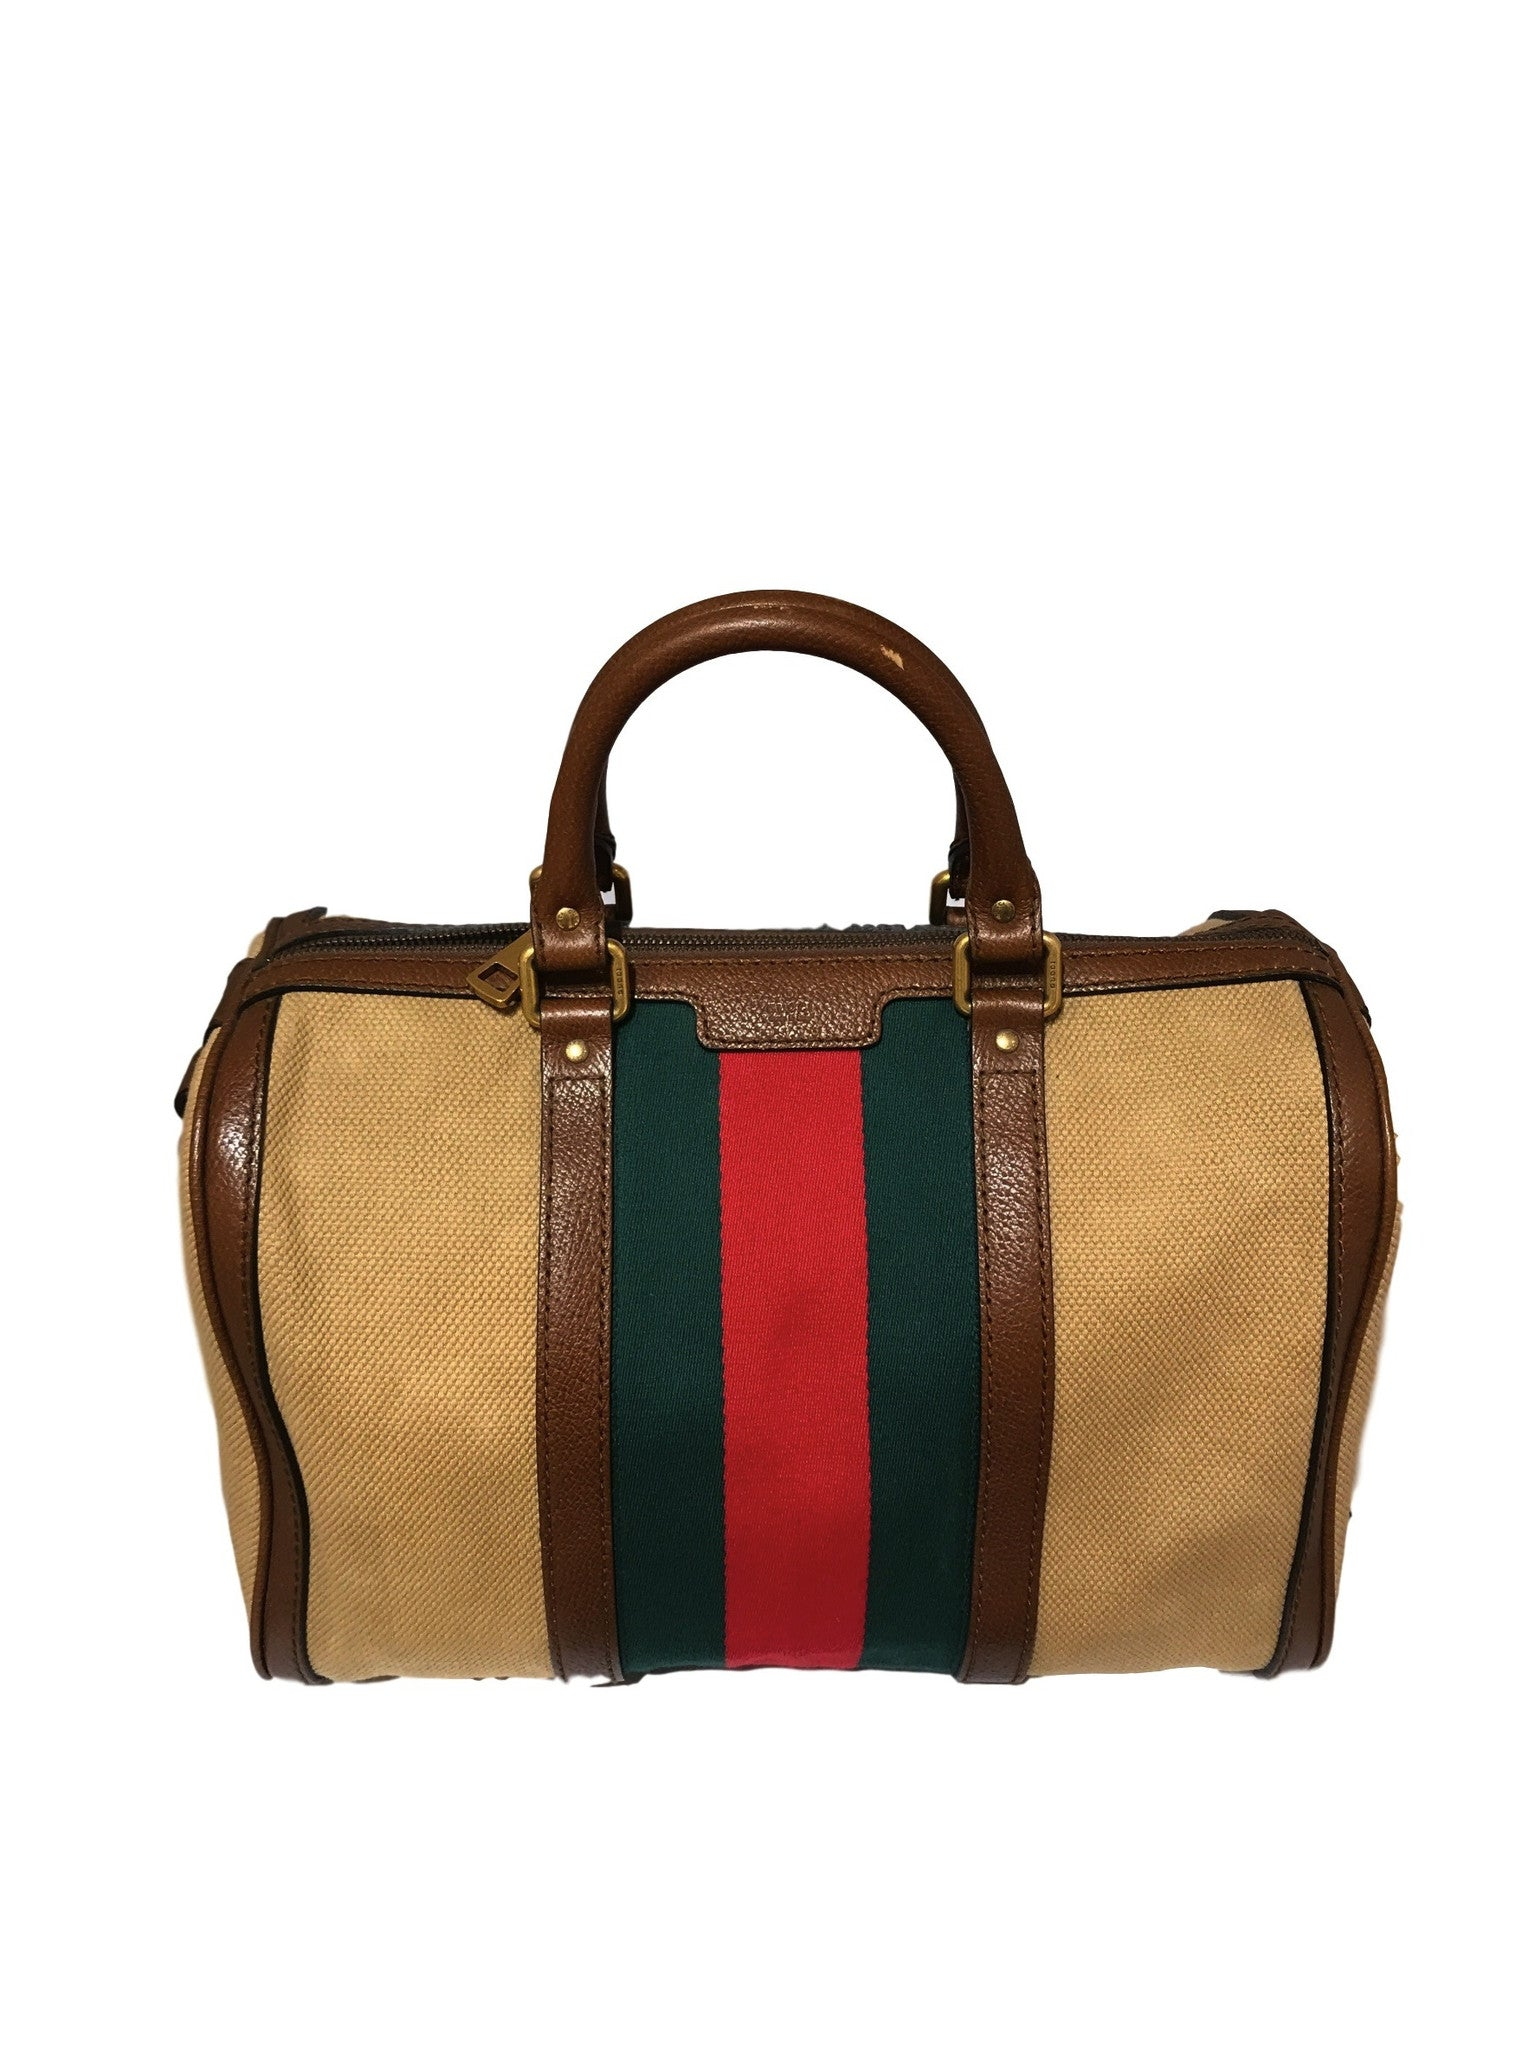 Gucci Vintage Web Washed Cotton Boston Bag